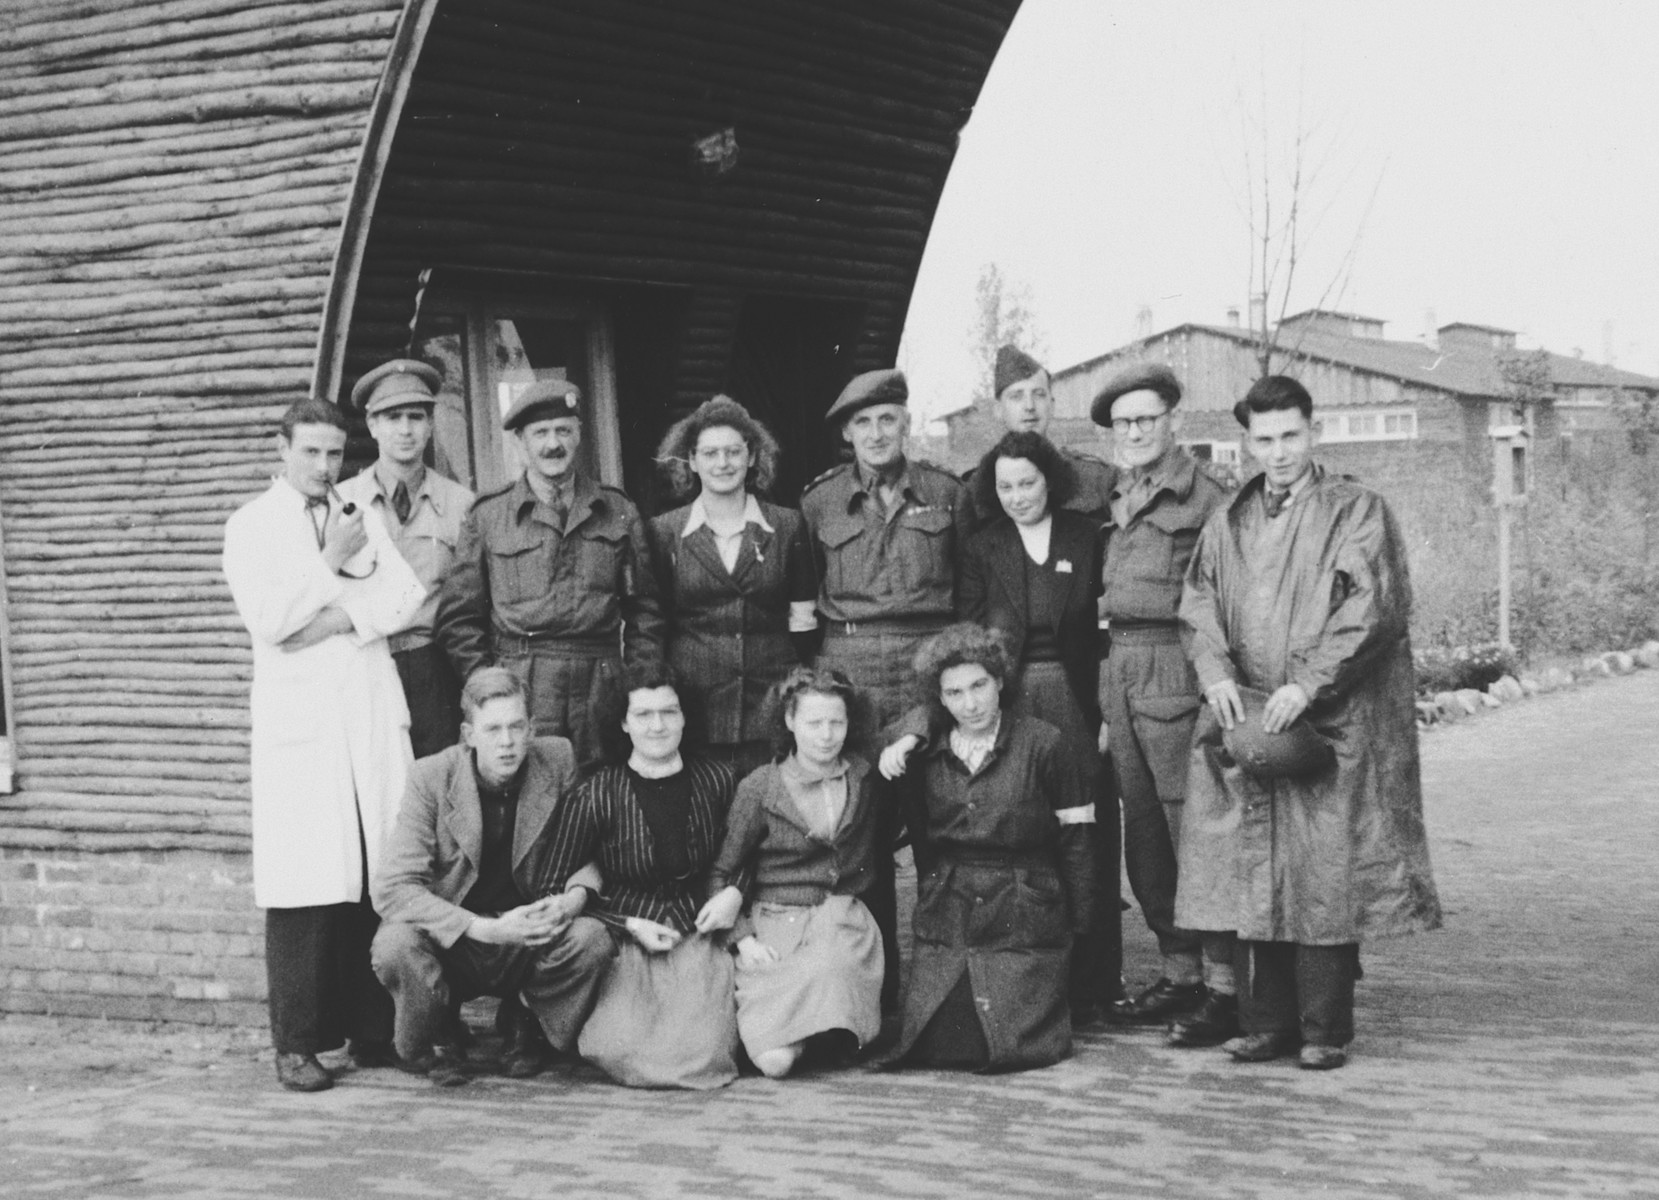 Group portrait of Red Cross volunteers and British troops near Eindhoven where they were helping refugees escaping from the German army and the front line.  Among those pictured is Hilde Jacobstahl (second row, fourth from left).